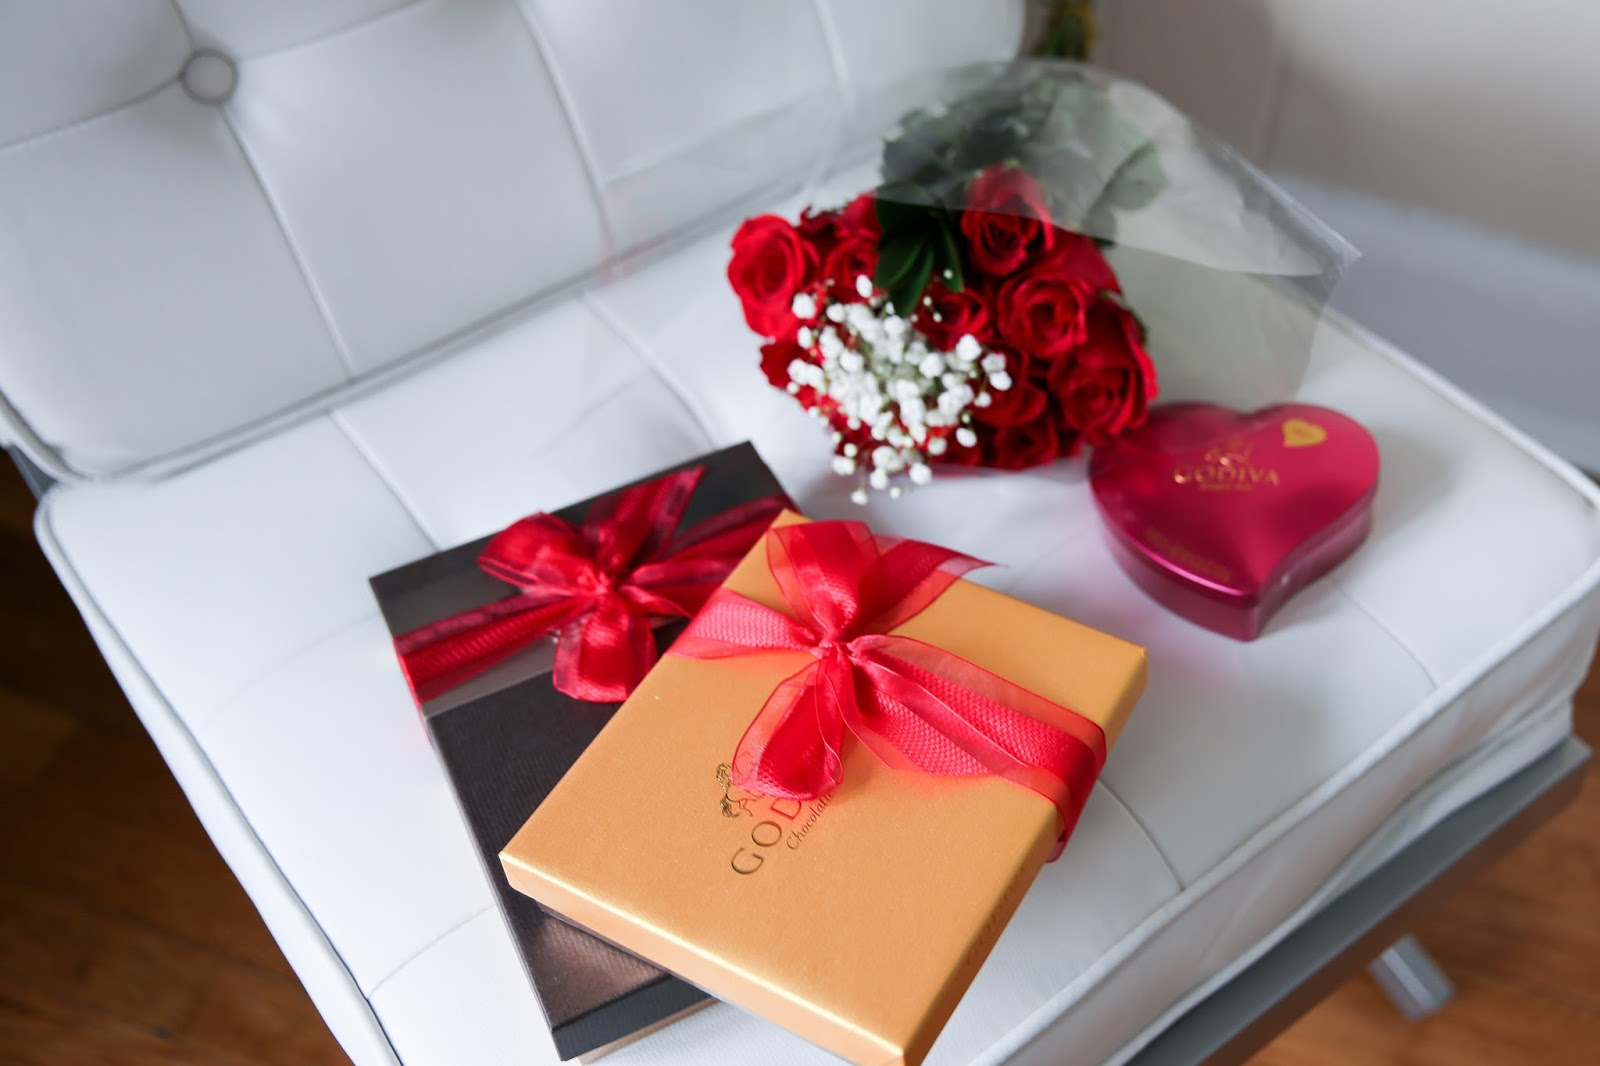 Roses and Godiva Chocolate